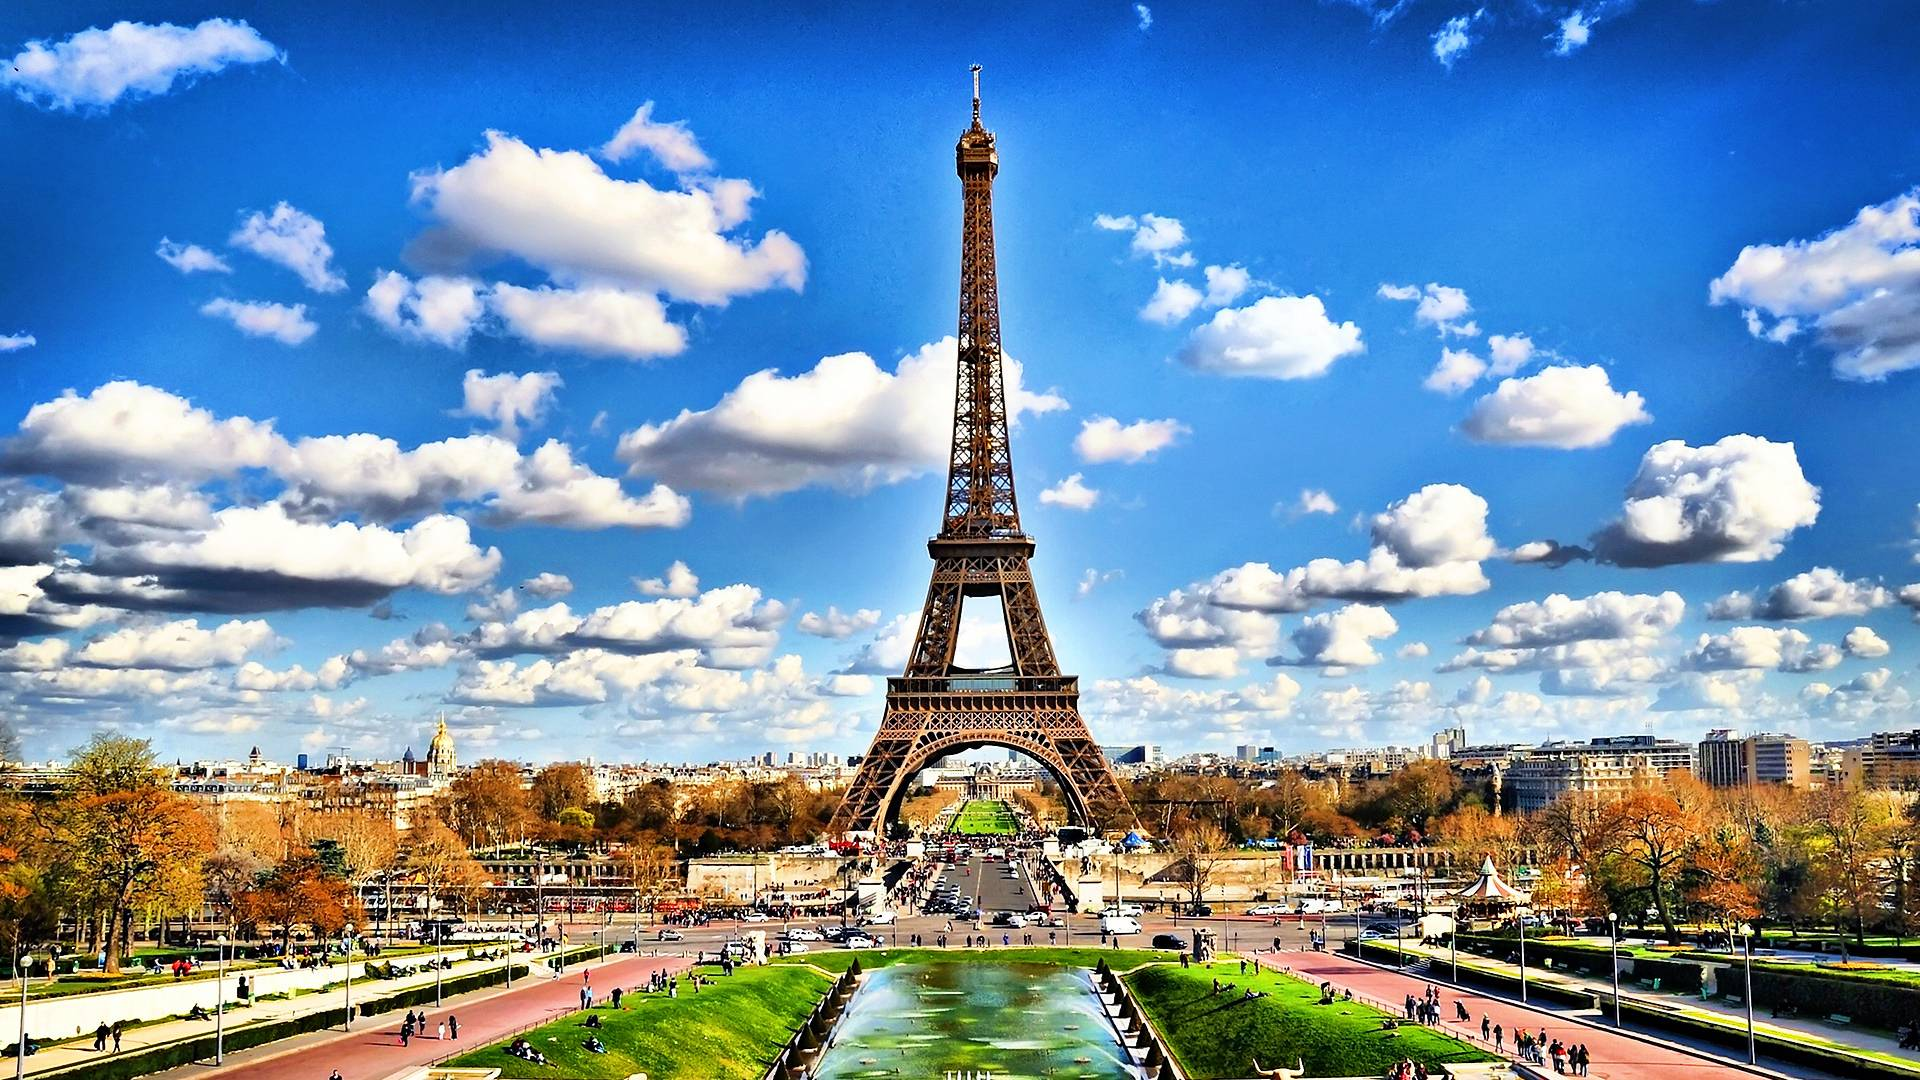 eiffel tower desktop wallpaper images for walls download